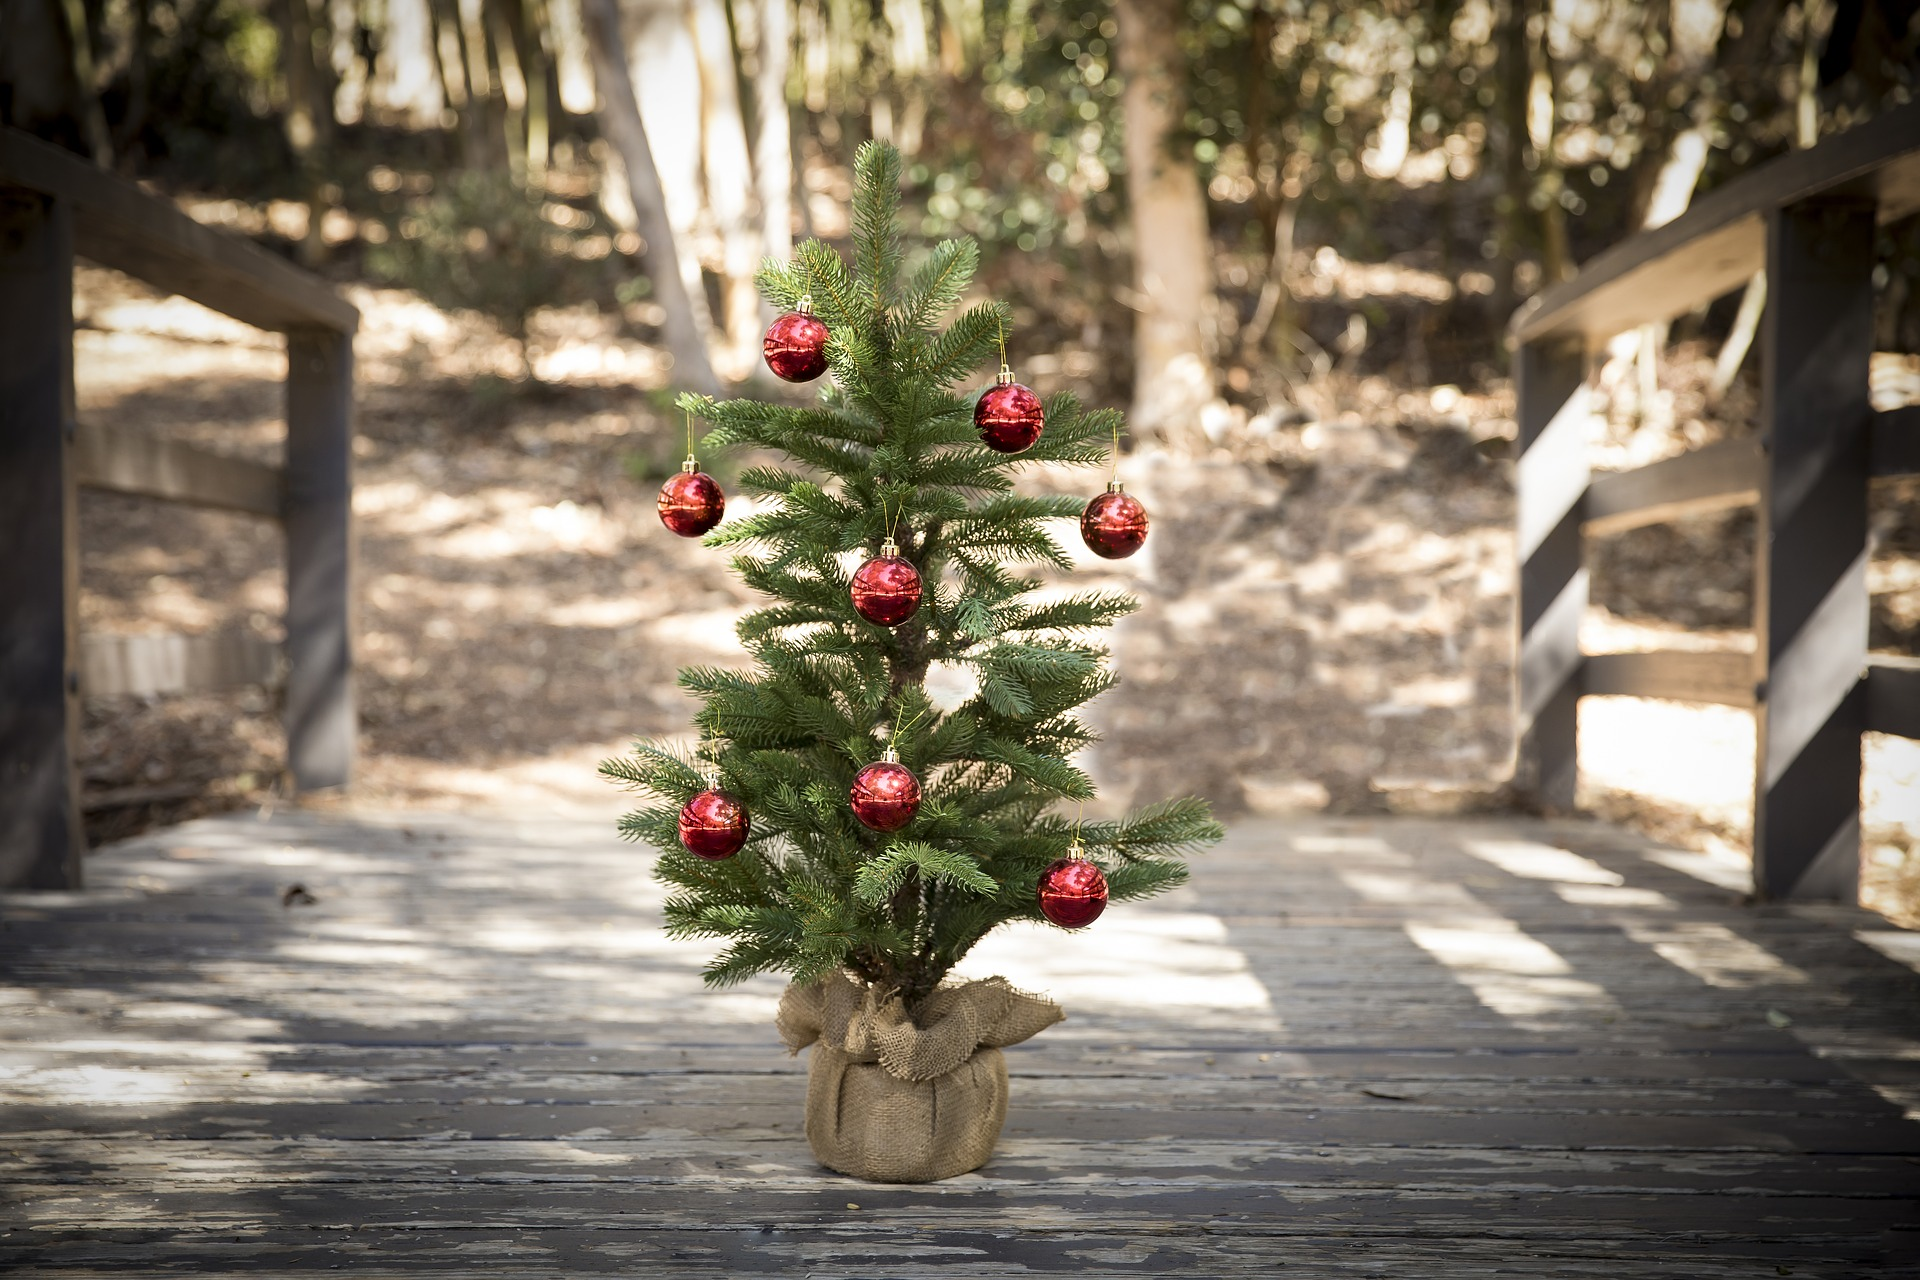 Recycling Artificial Christmas Tree In Abilene Tx 2021 8 Ways To Recycle Your Real And Fake Christmas Trees Zero Waste Nerd